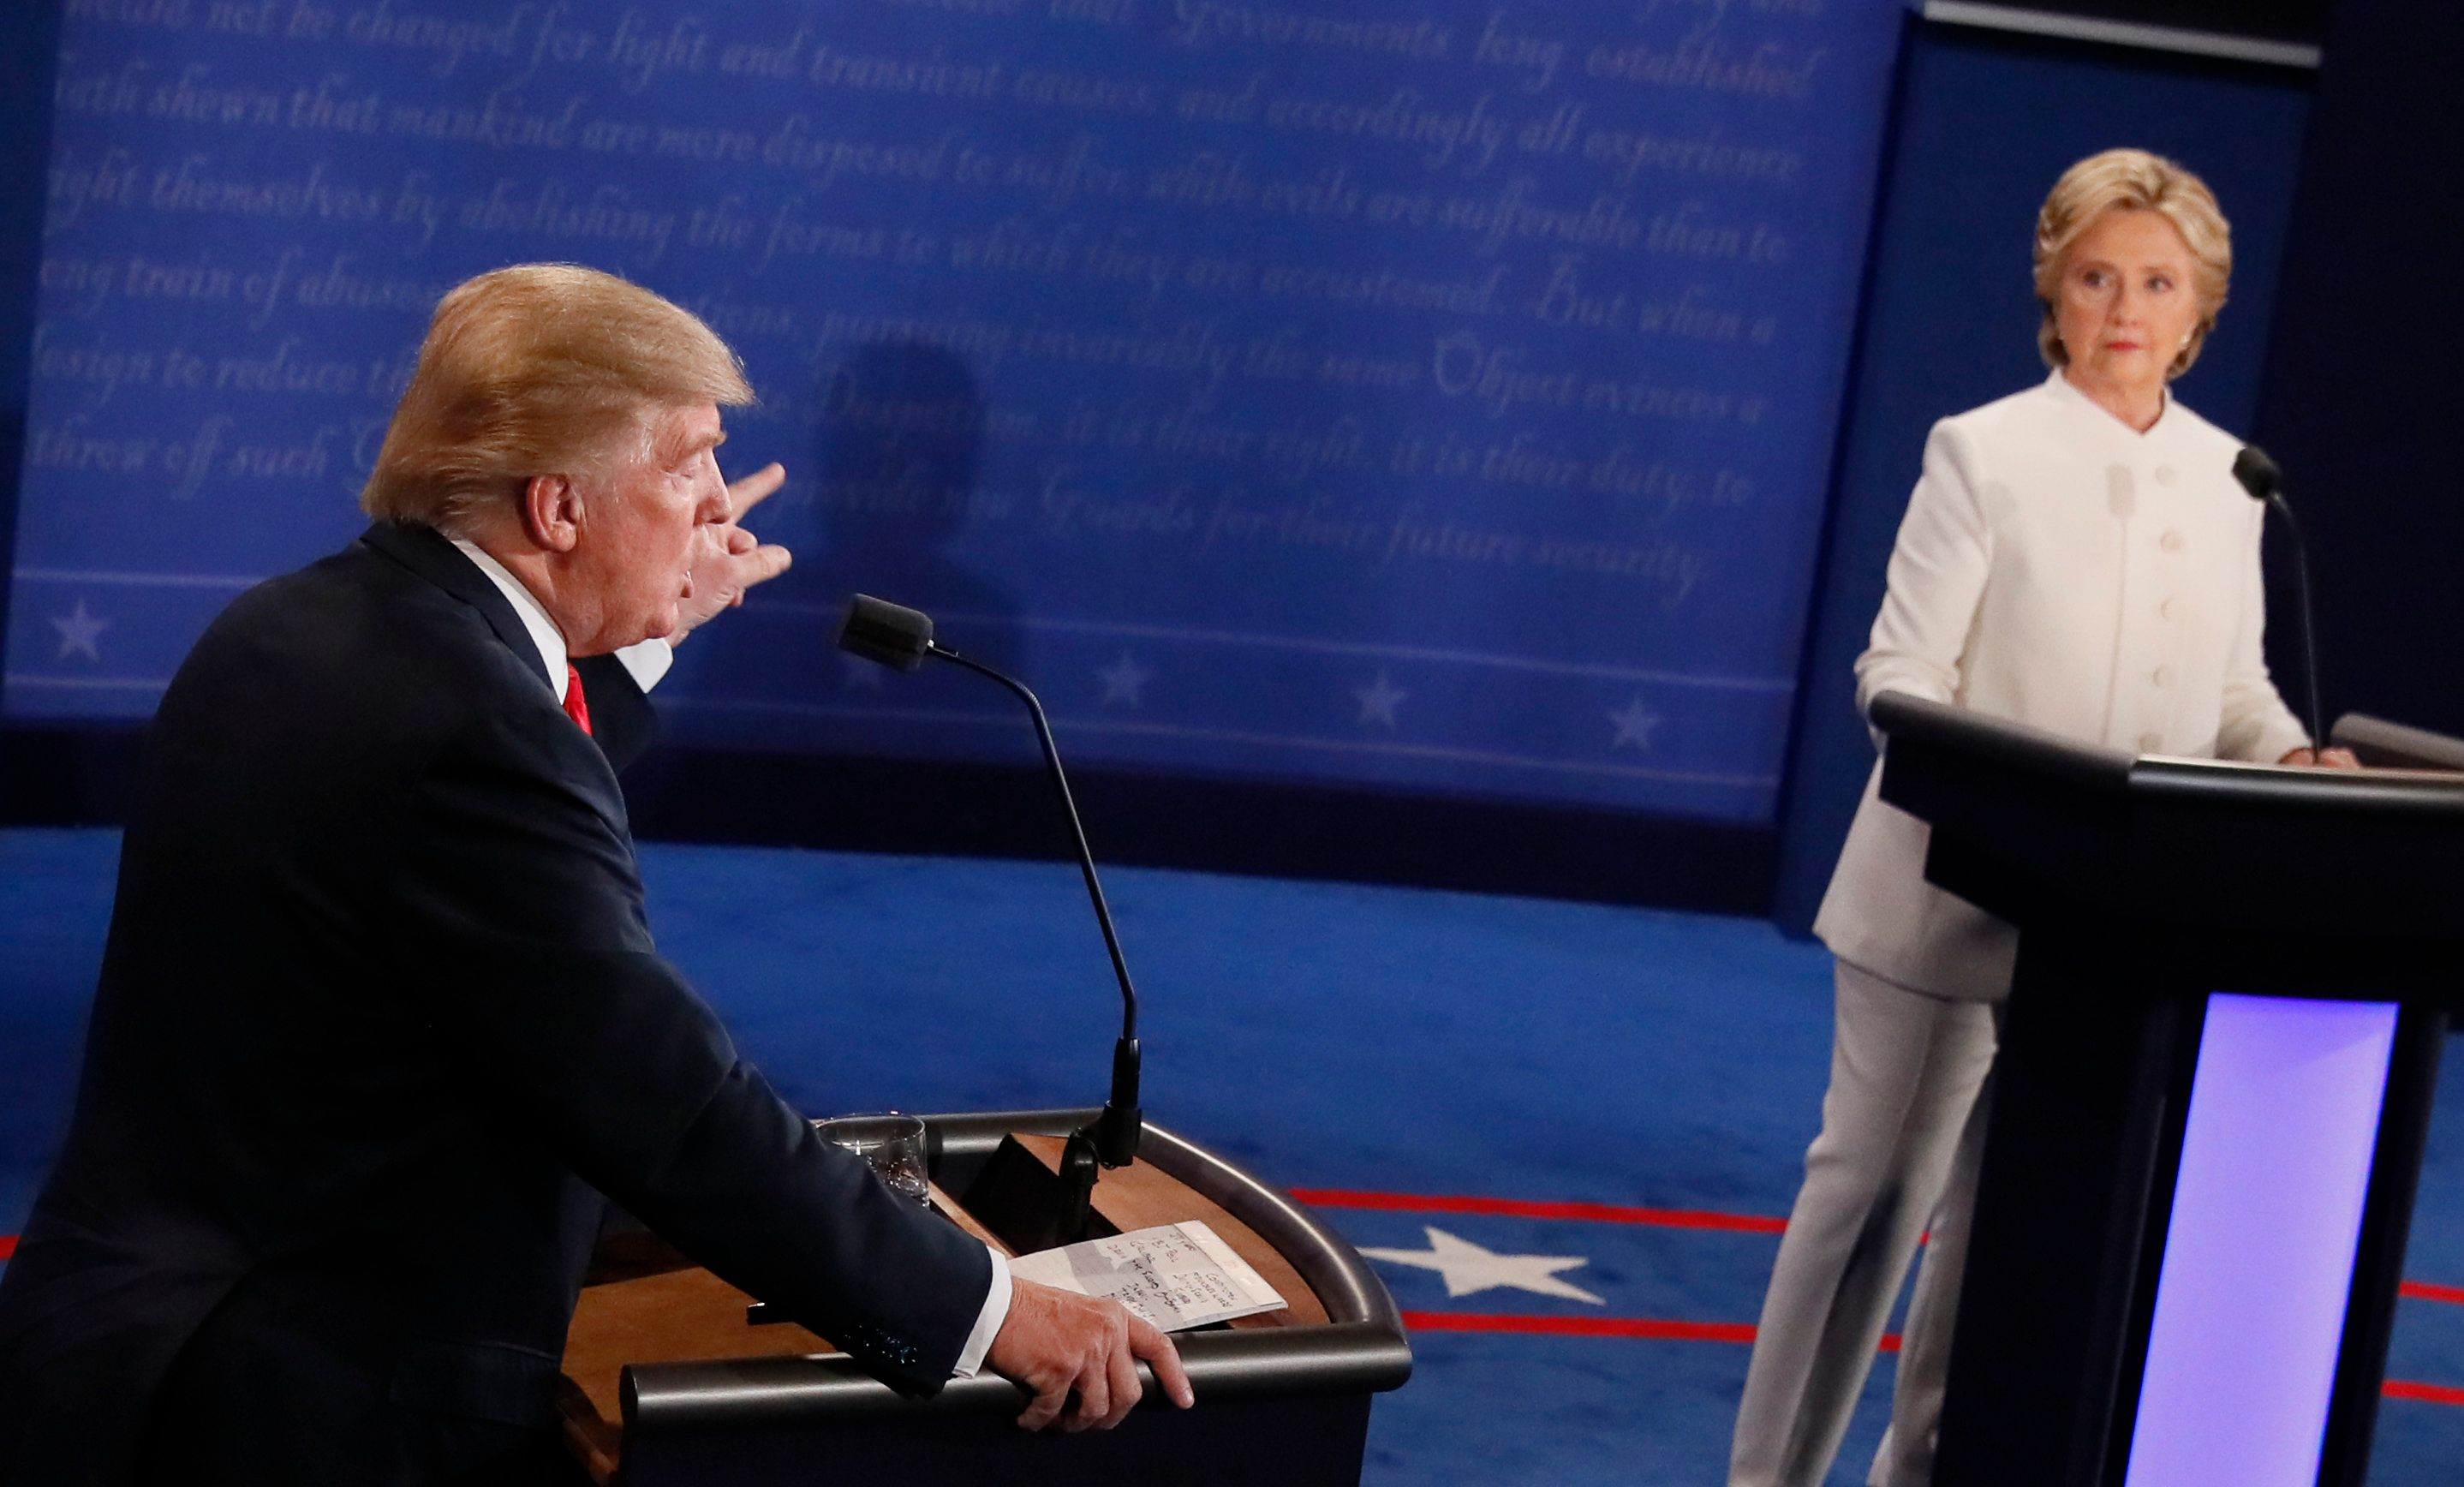 Then-Republican presidential nominee Donald Trump speaks as then-Democratic presidential nominee Hillary Clinton looks on dur